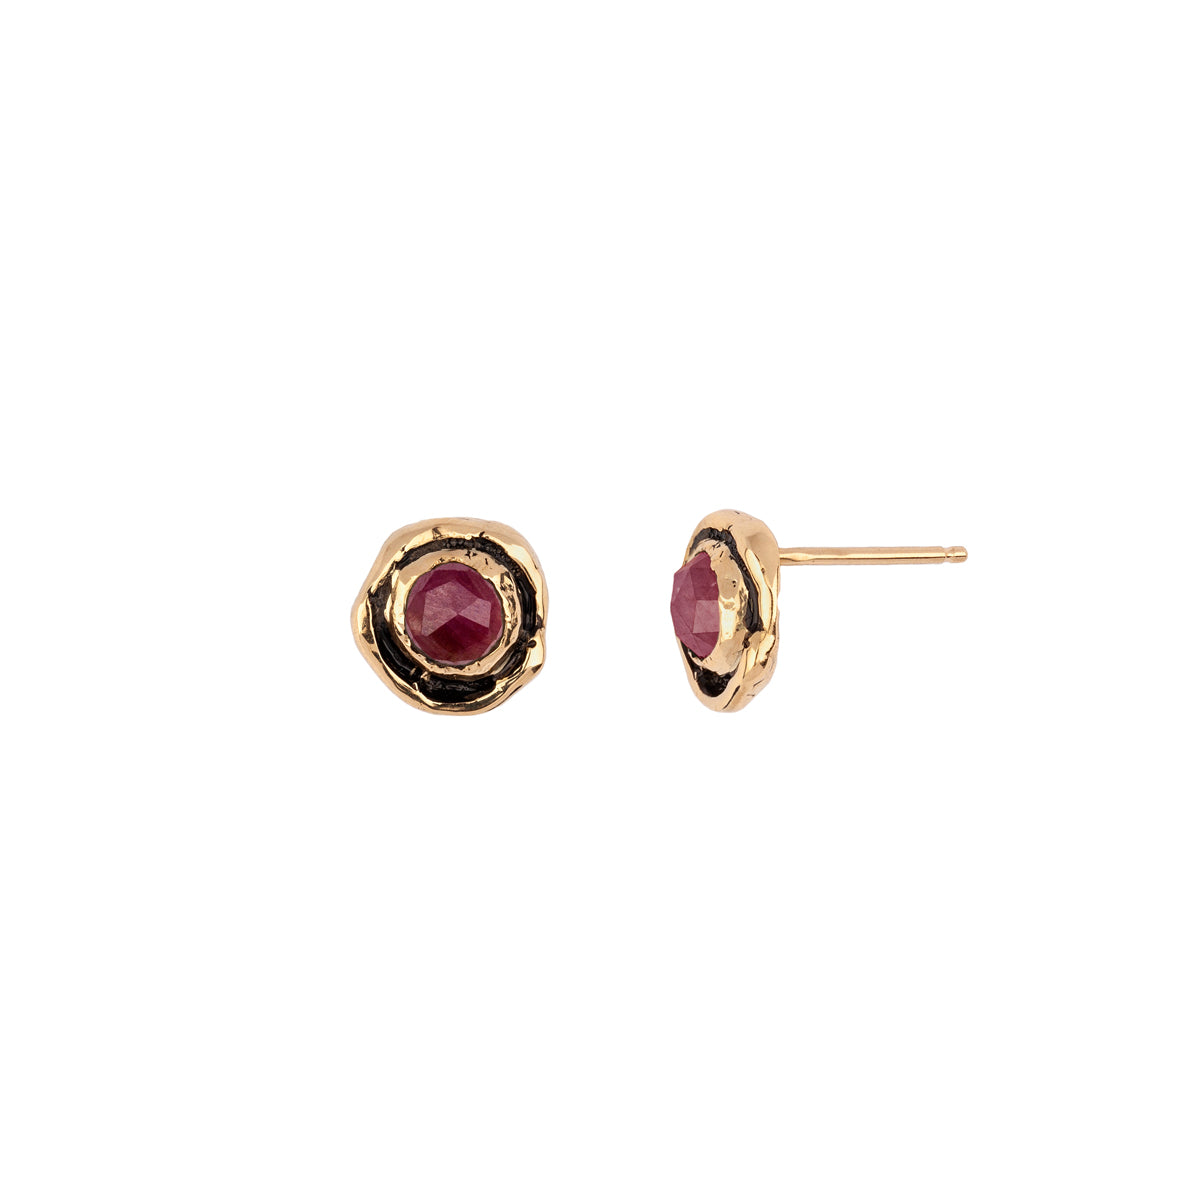 Small Ruby Faceted Stone 14K Gold Stud